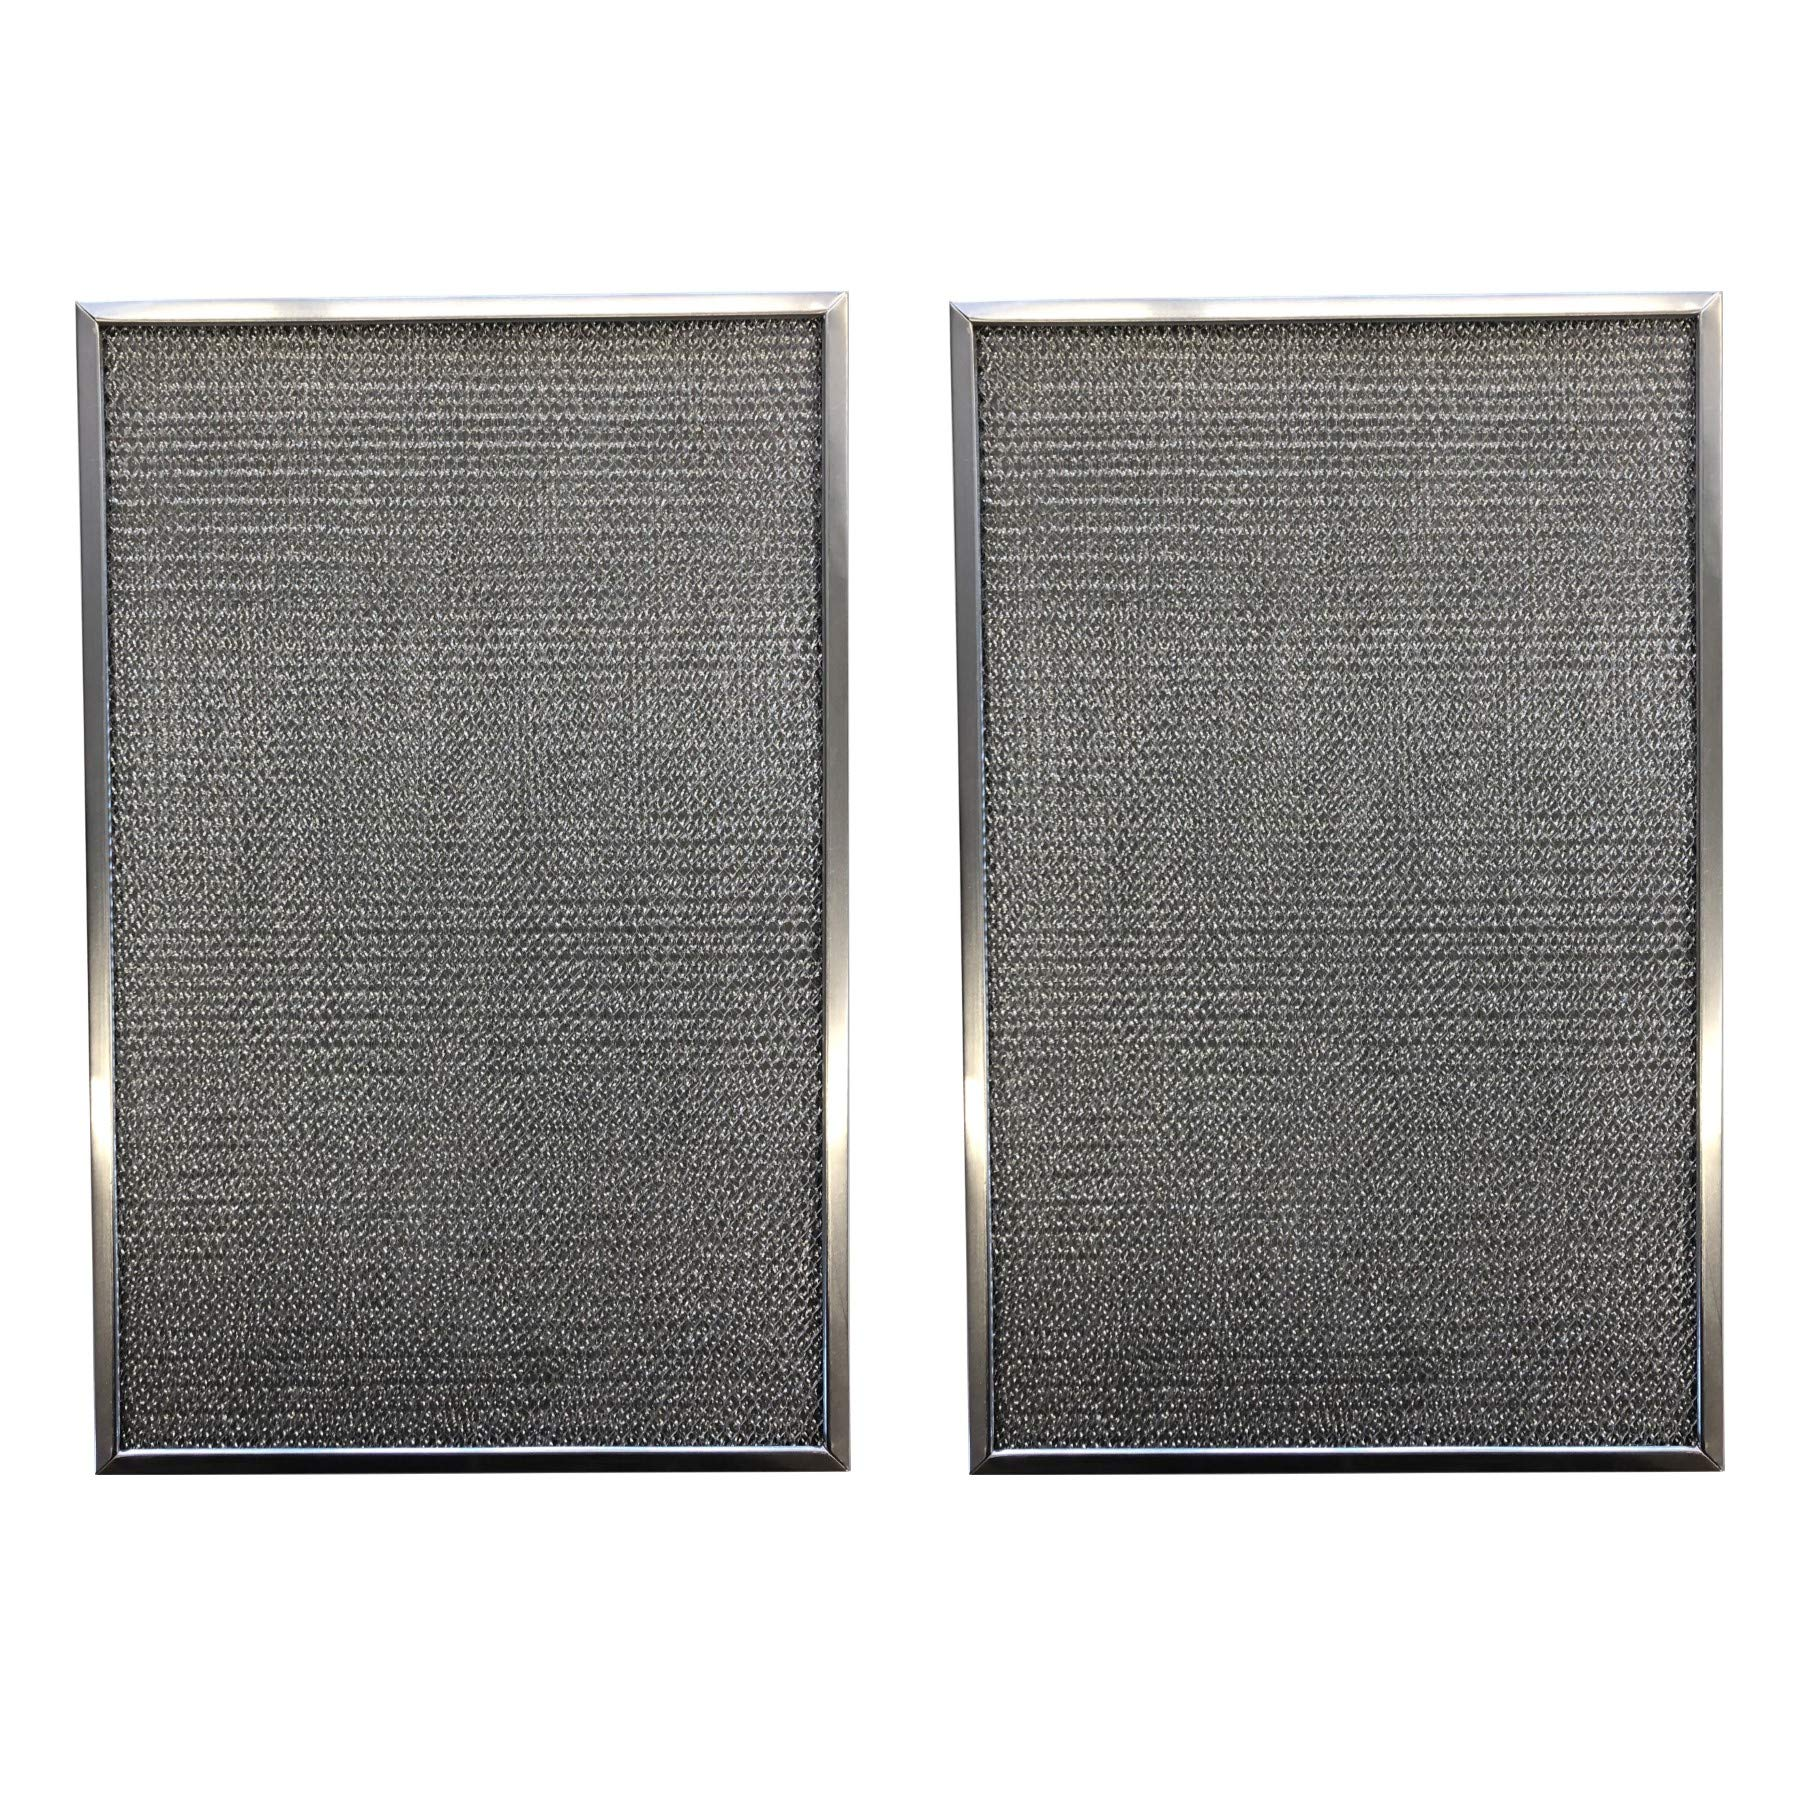 Replacement Aluminum Pre/Post Filter  12 3/8 X 19 7/8 X 3/8 2 TSSS   Compatible with Honeywell Model